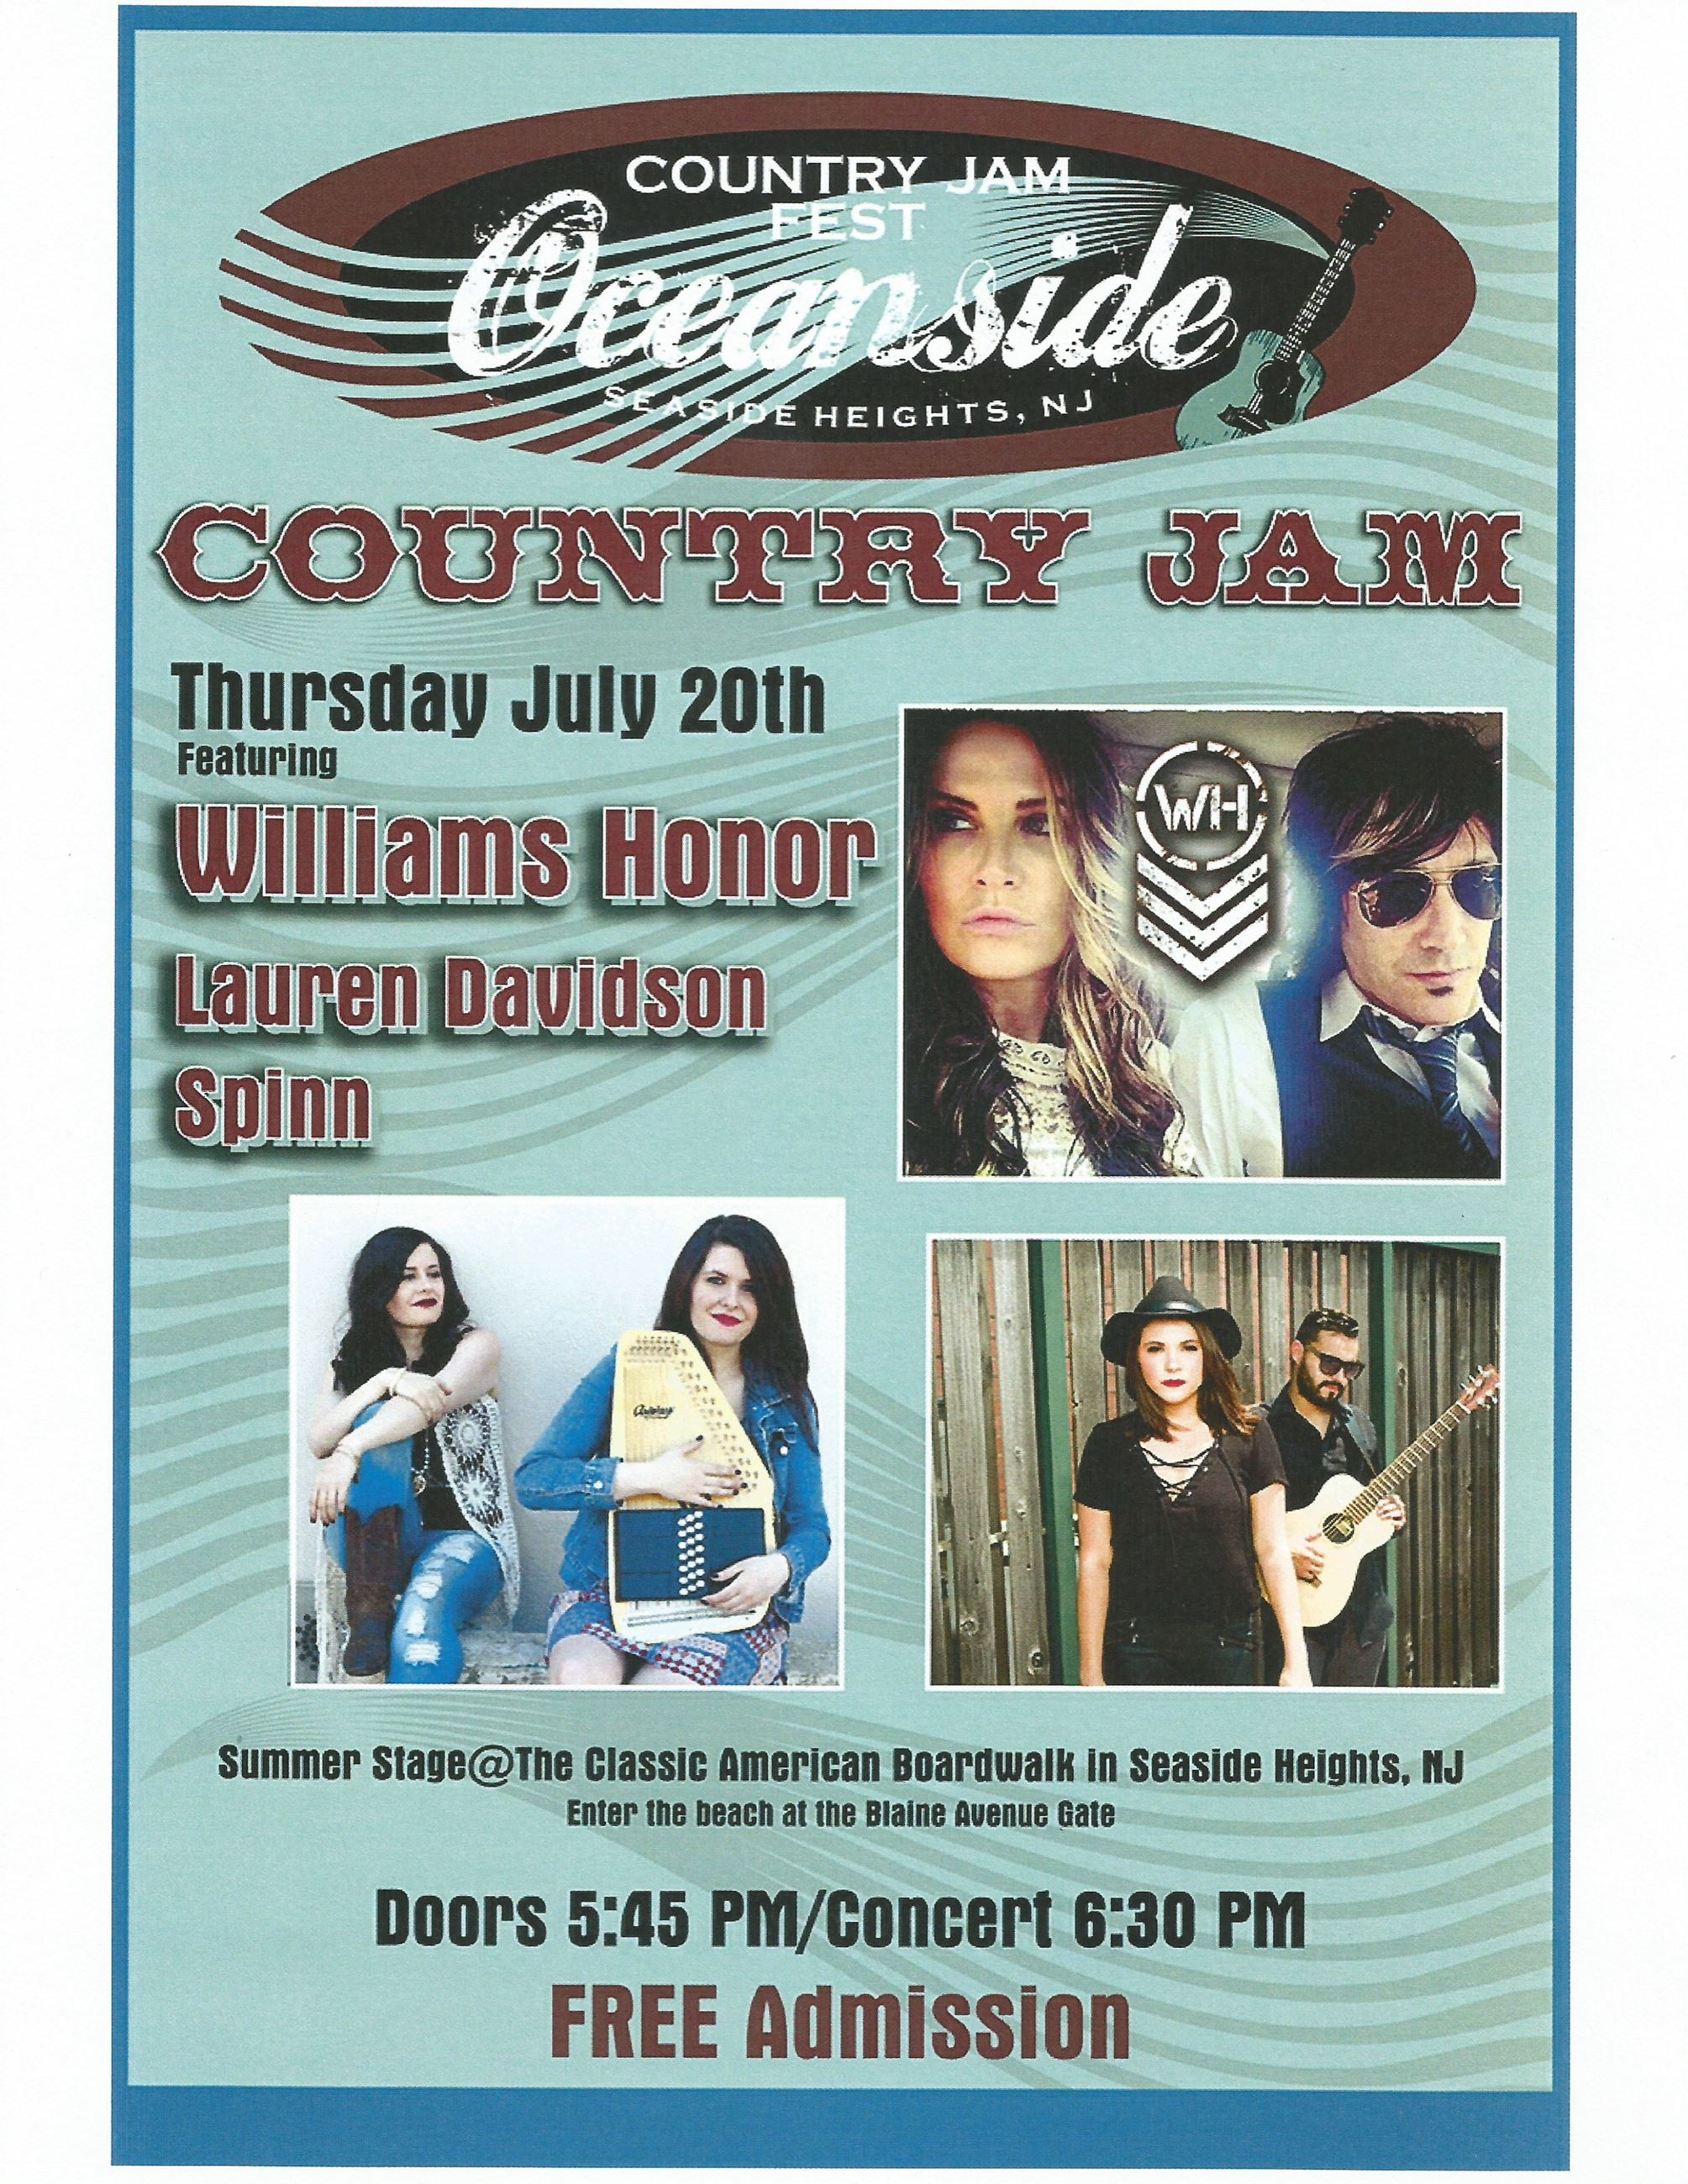 Oceanside Country Jam